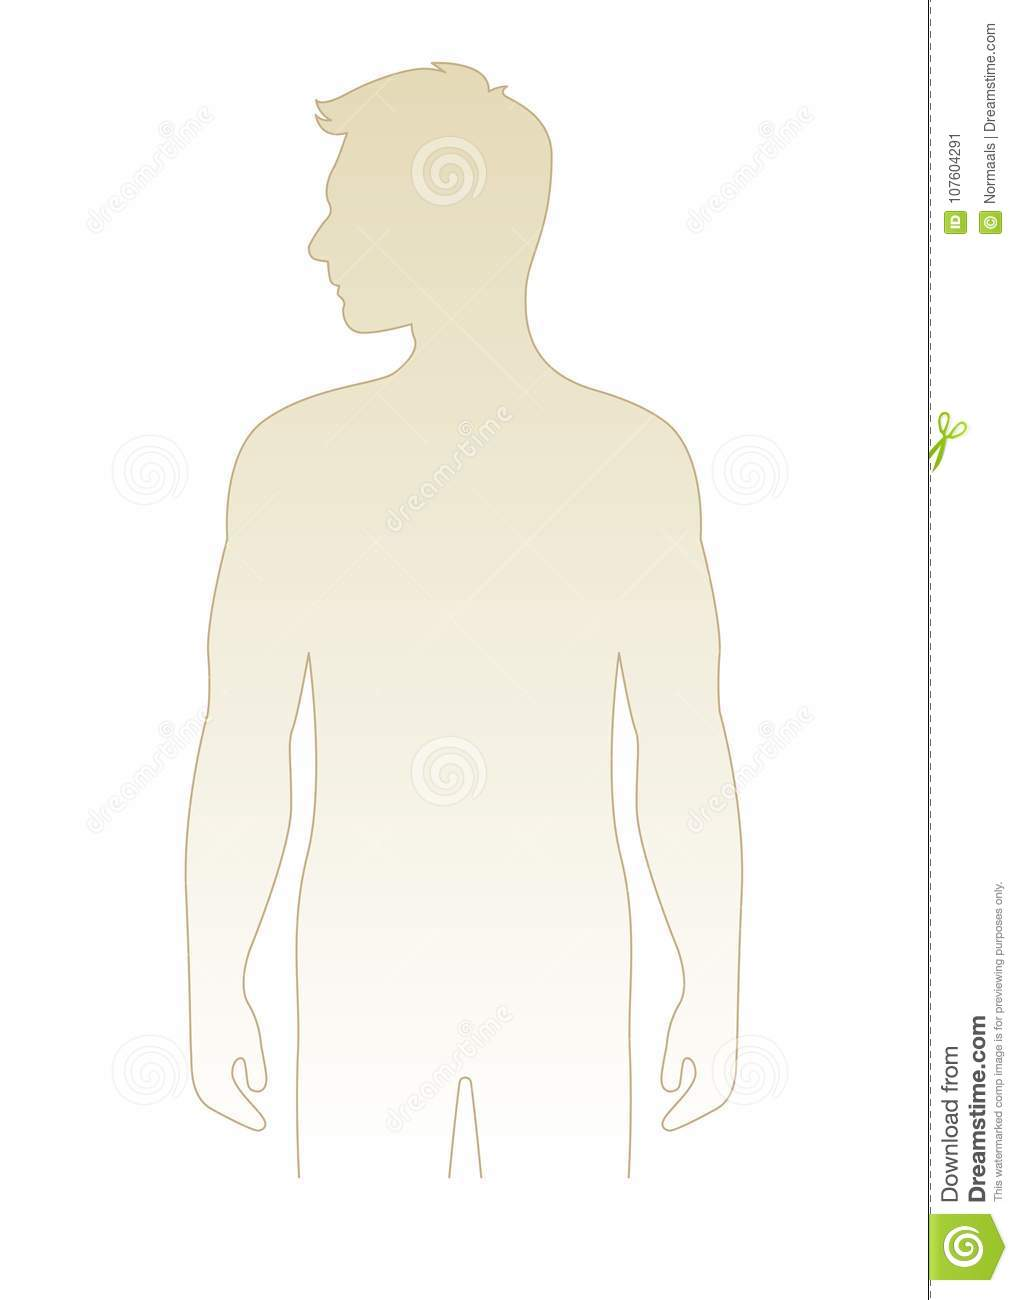 Blank Male Body Template Vector Illustration, Front View Torso ...